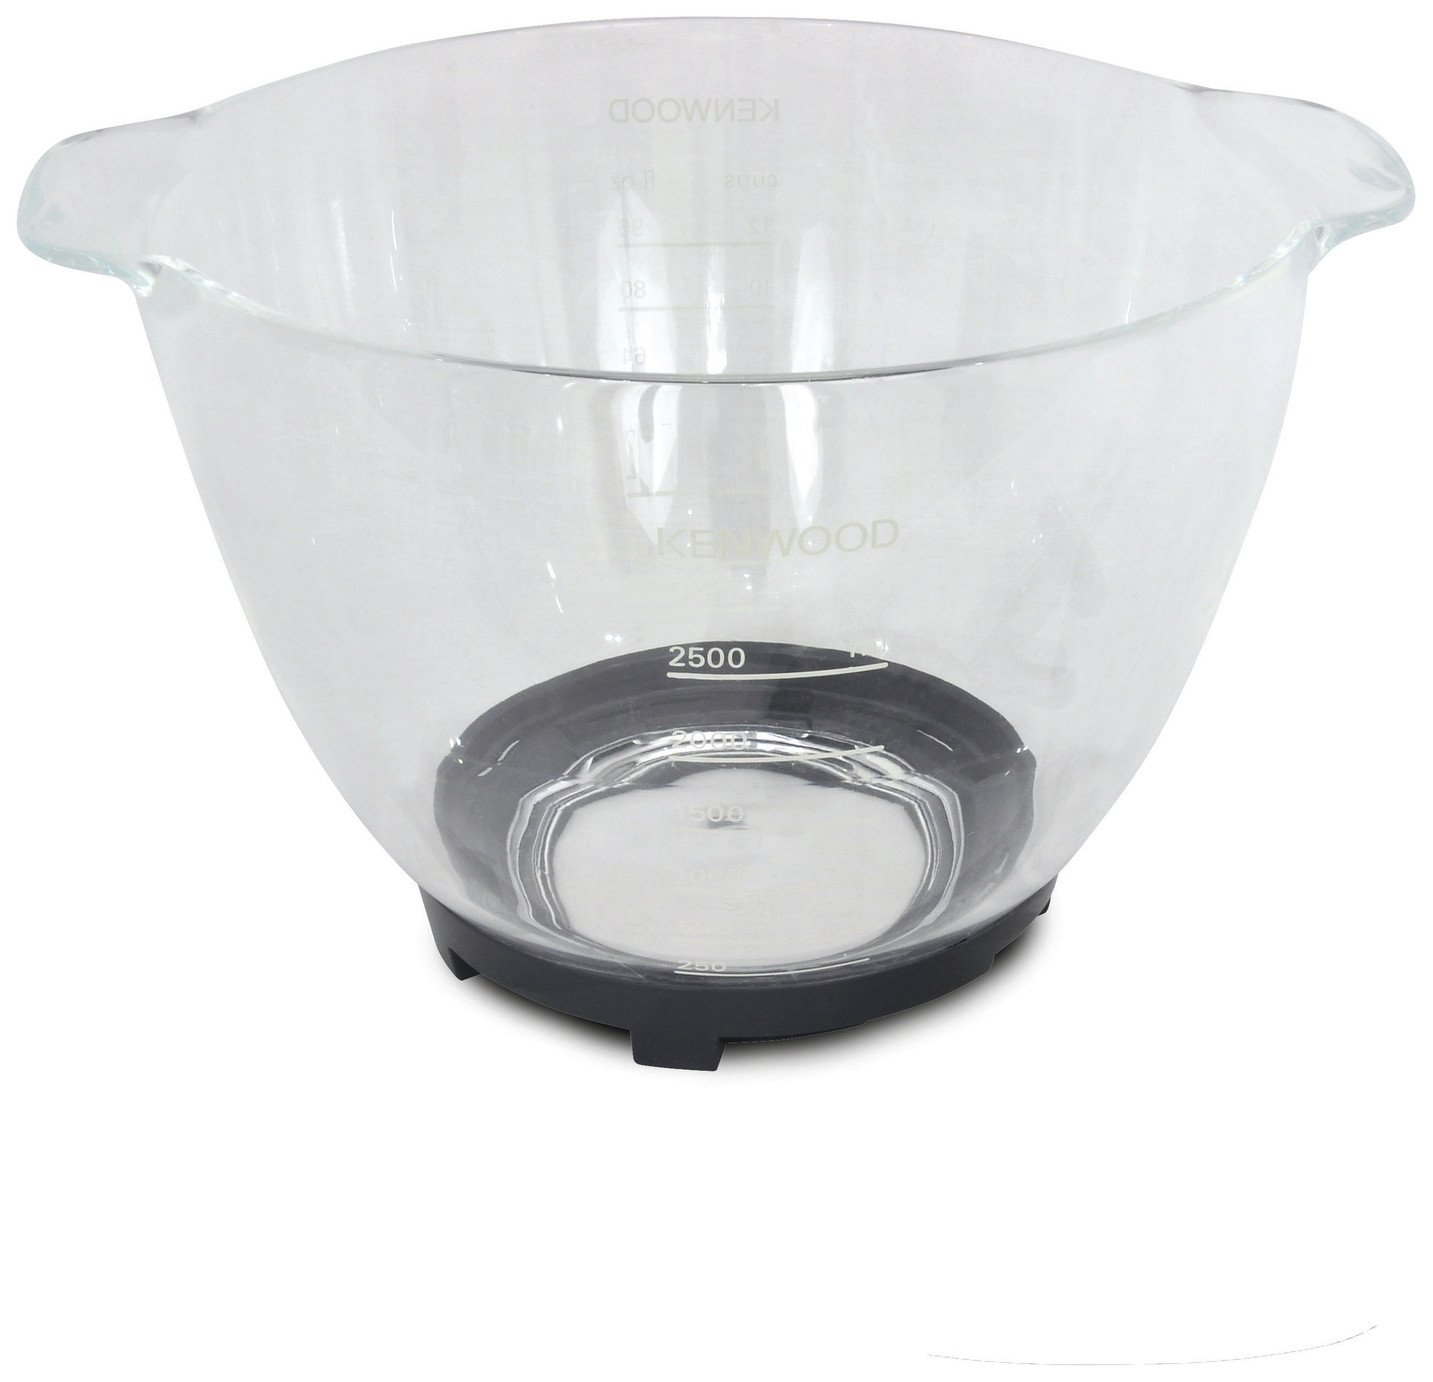 Kenwood AT550 Glass Bowl for Kenwood Chef